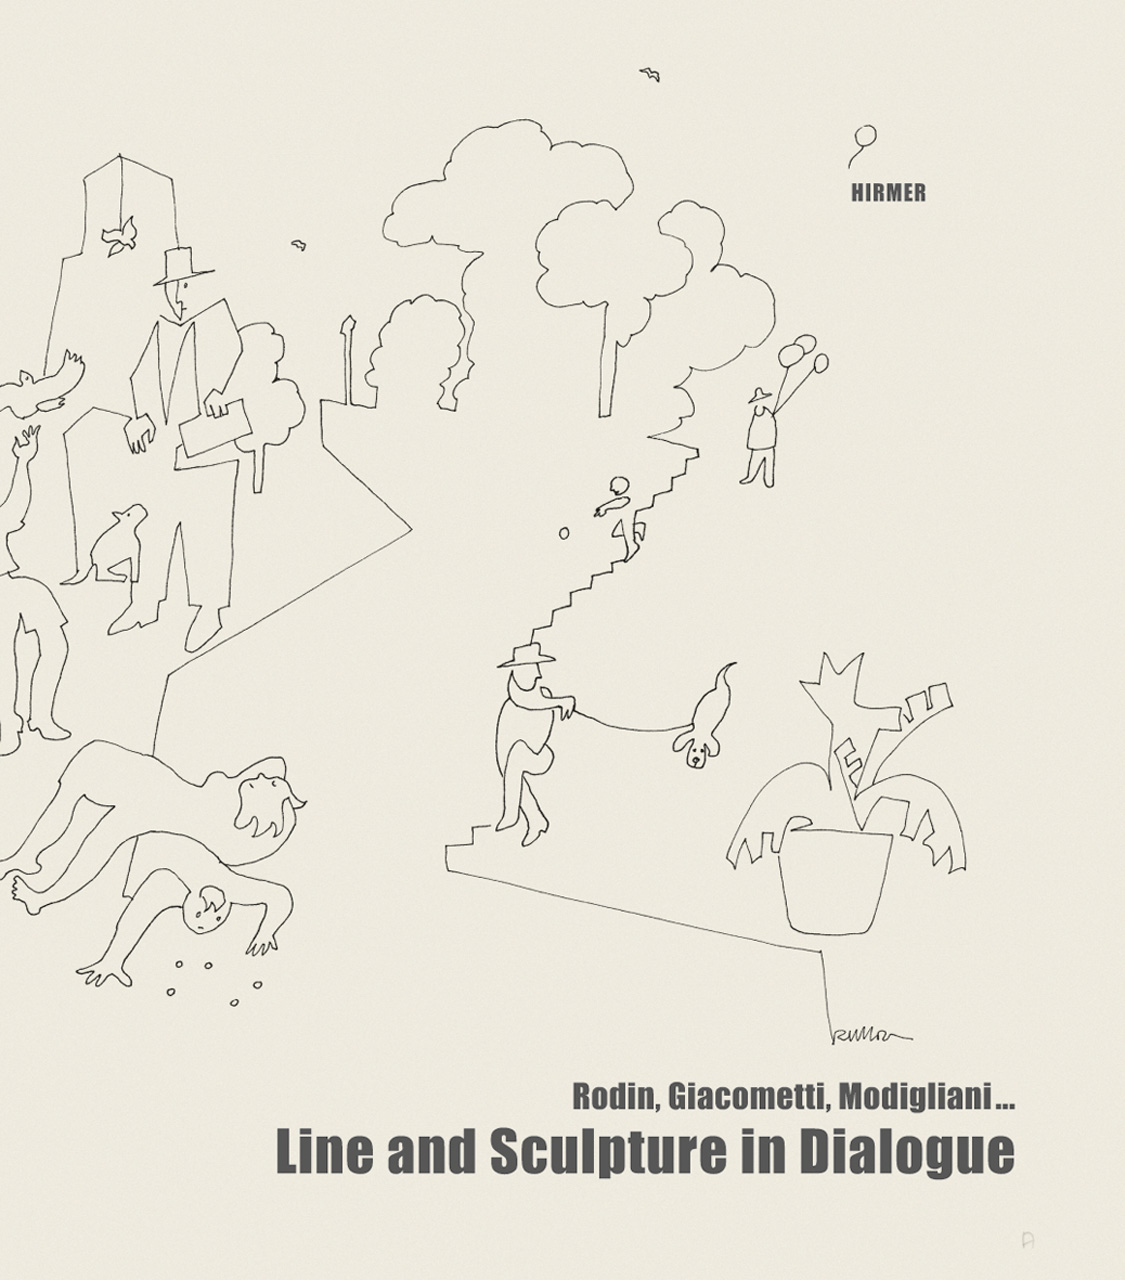 Line and Sculpture in Dialogue